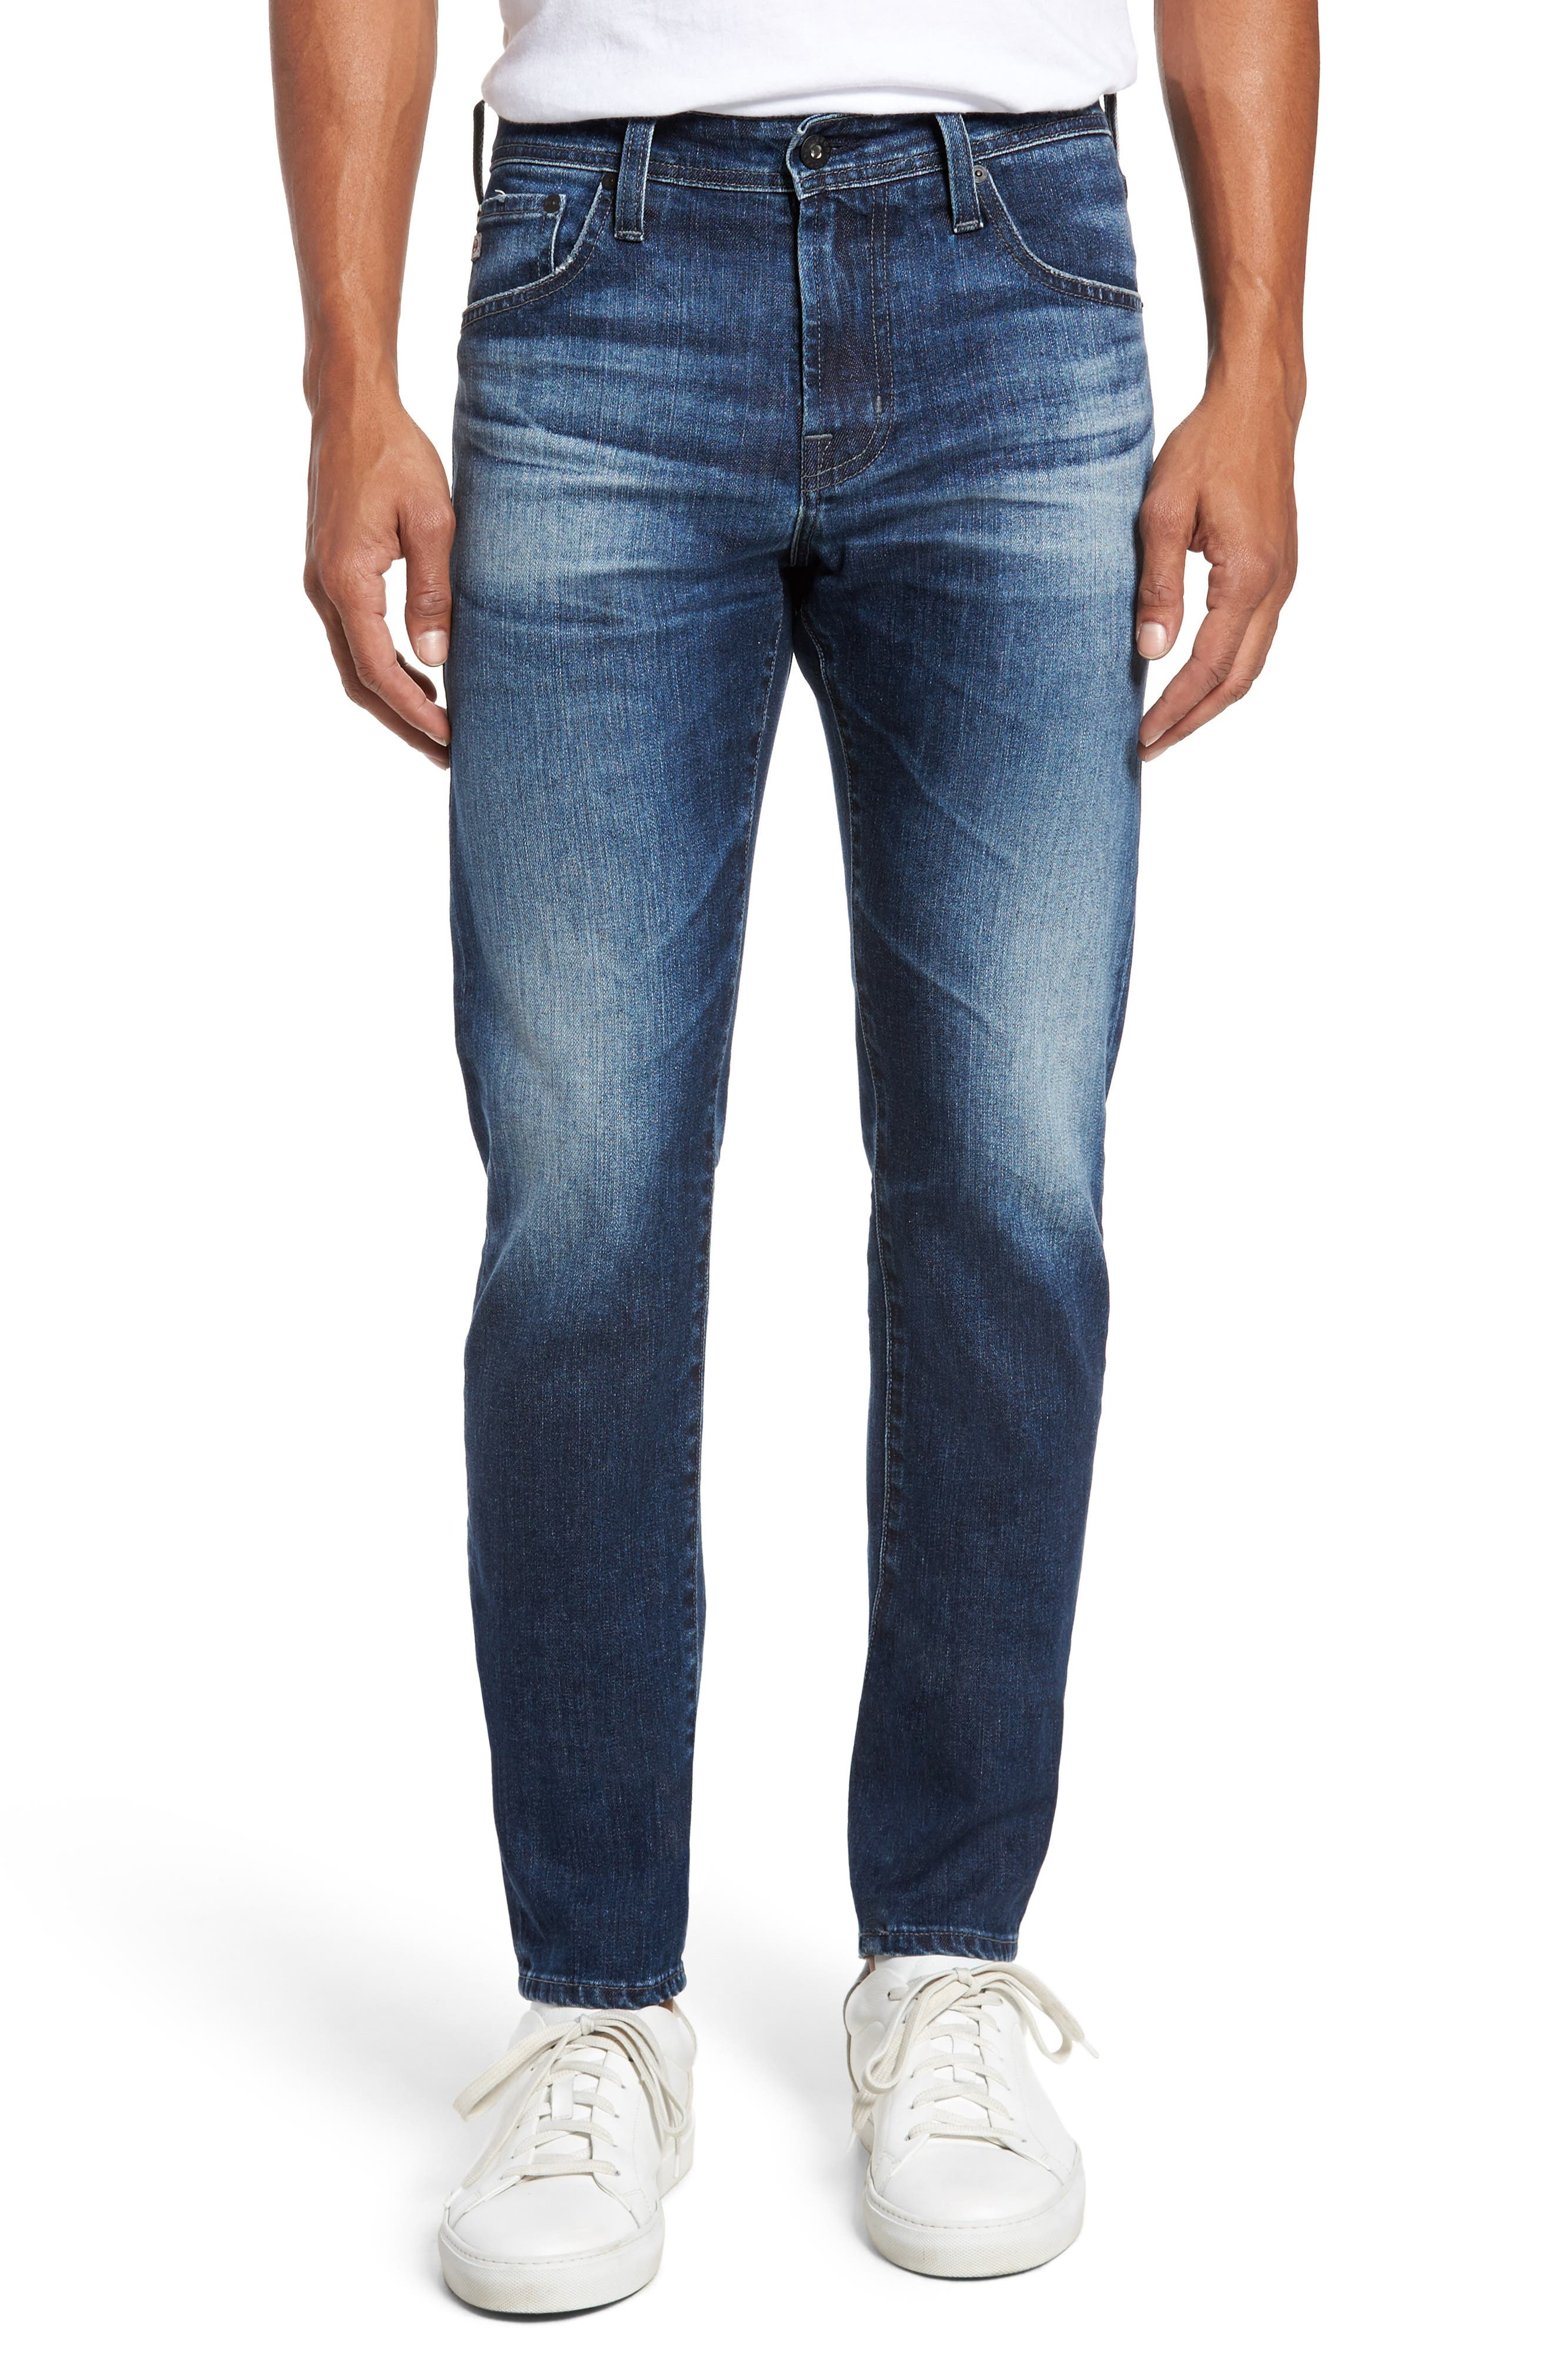 Stockton Skinny Fit Jeans,                         Main,                         color, 7 Years Blue Spire